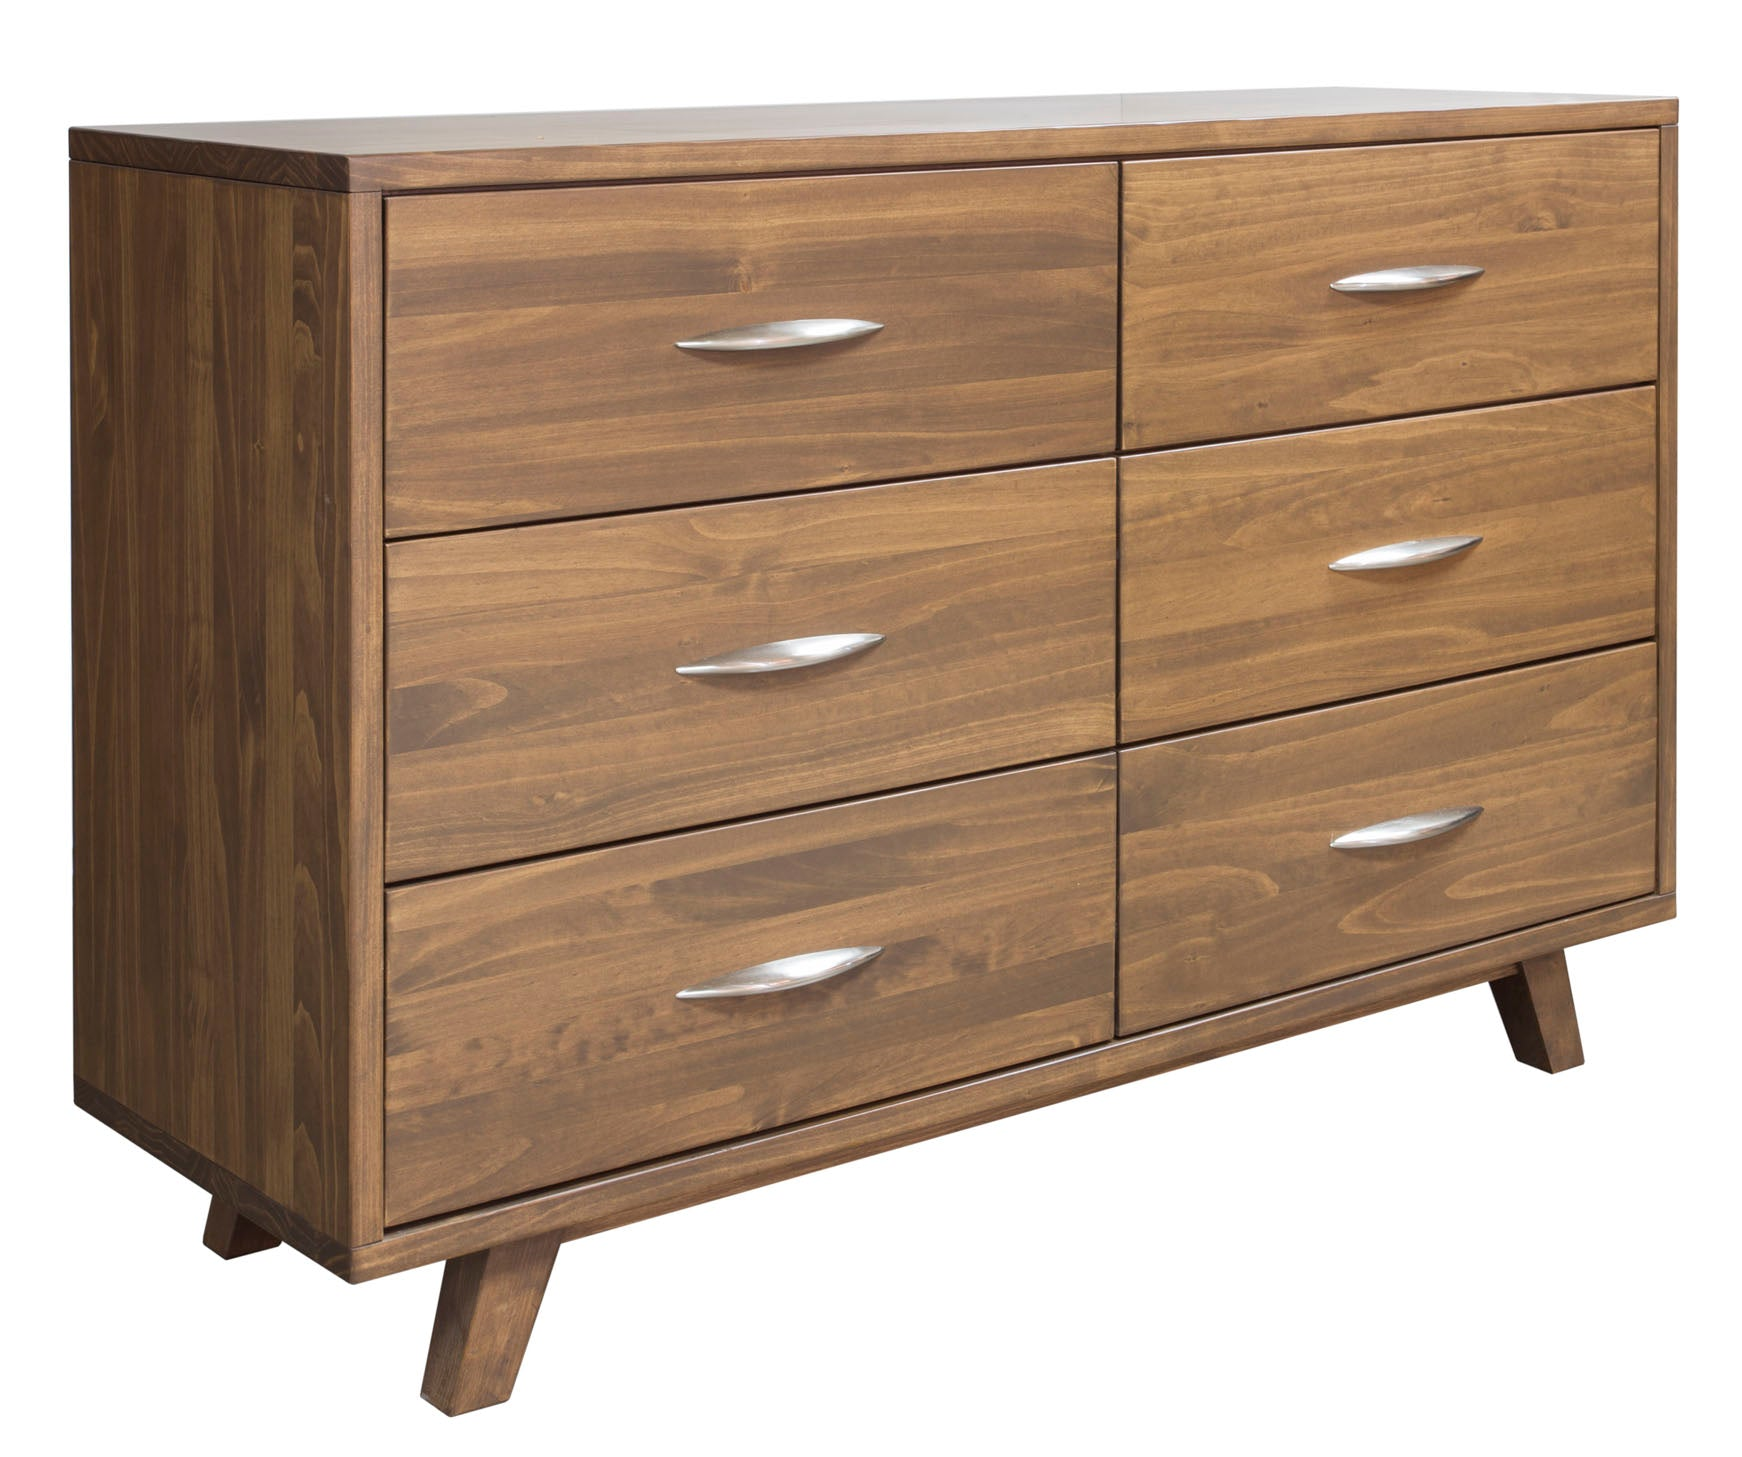 Soho Caramel Pine 6 Drawer Dresser - MJM Furniture